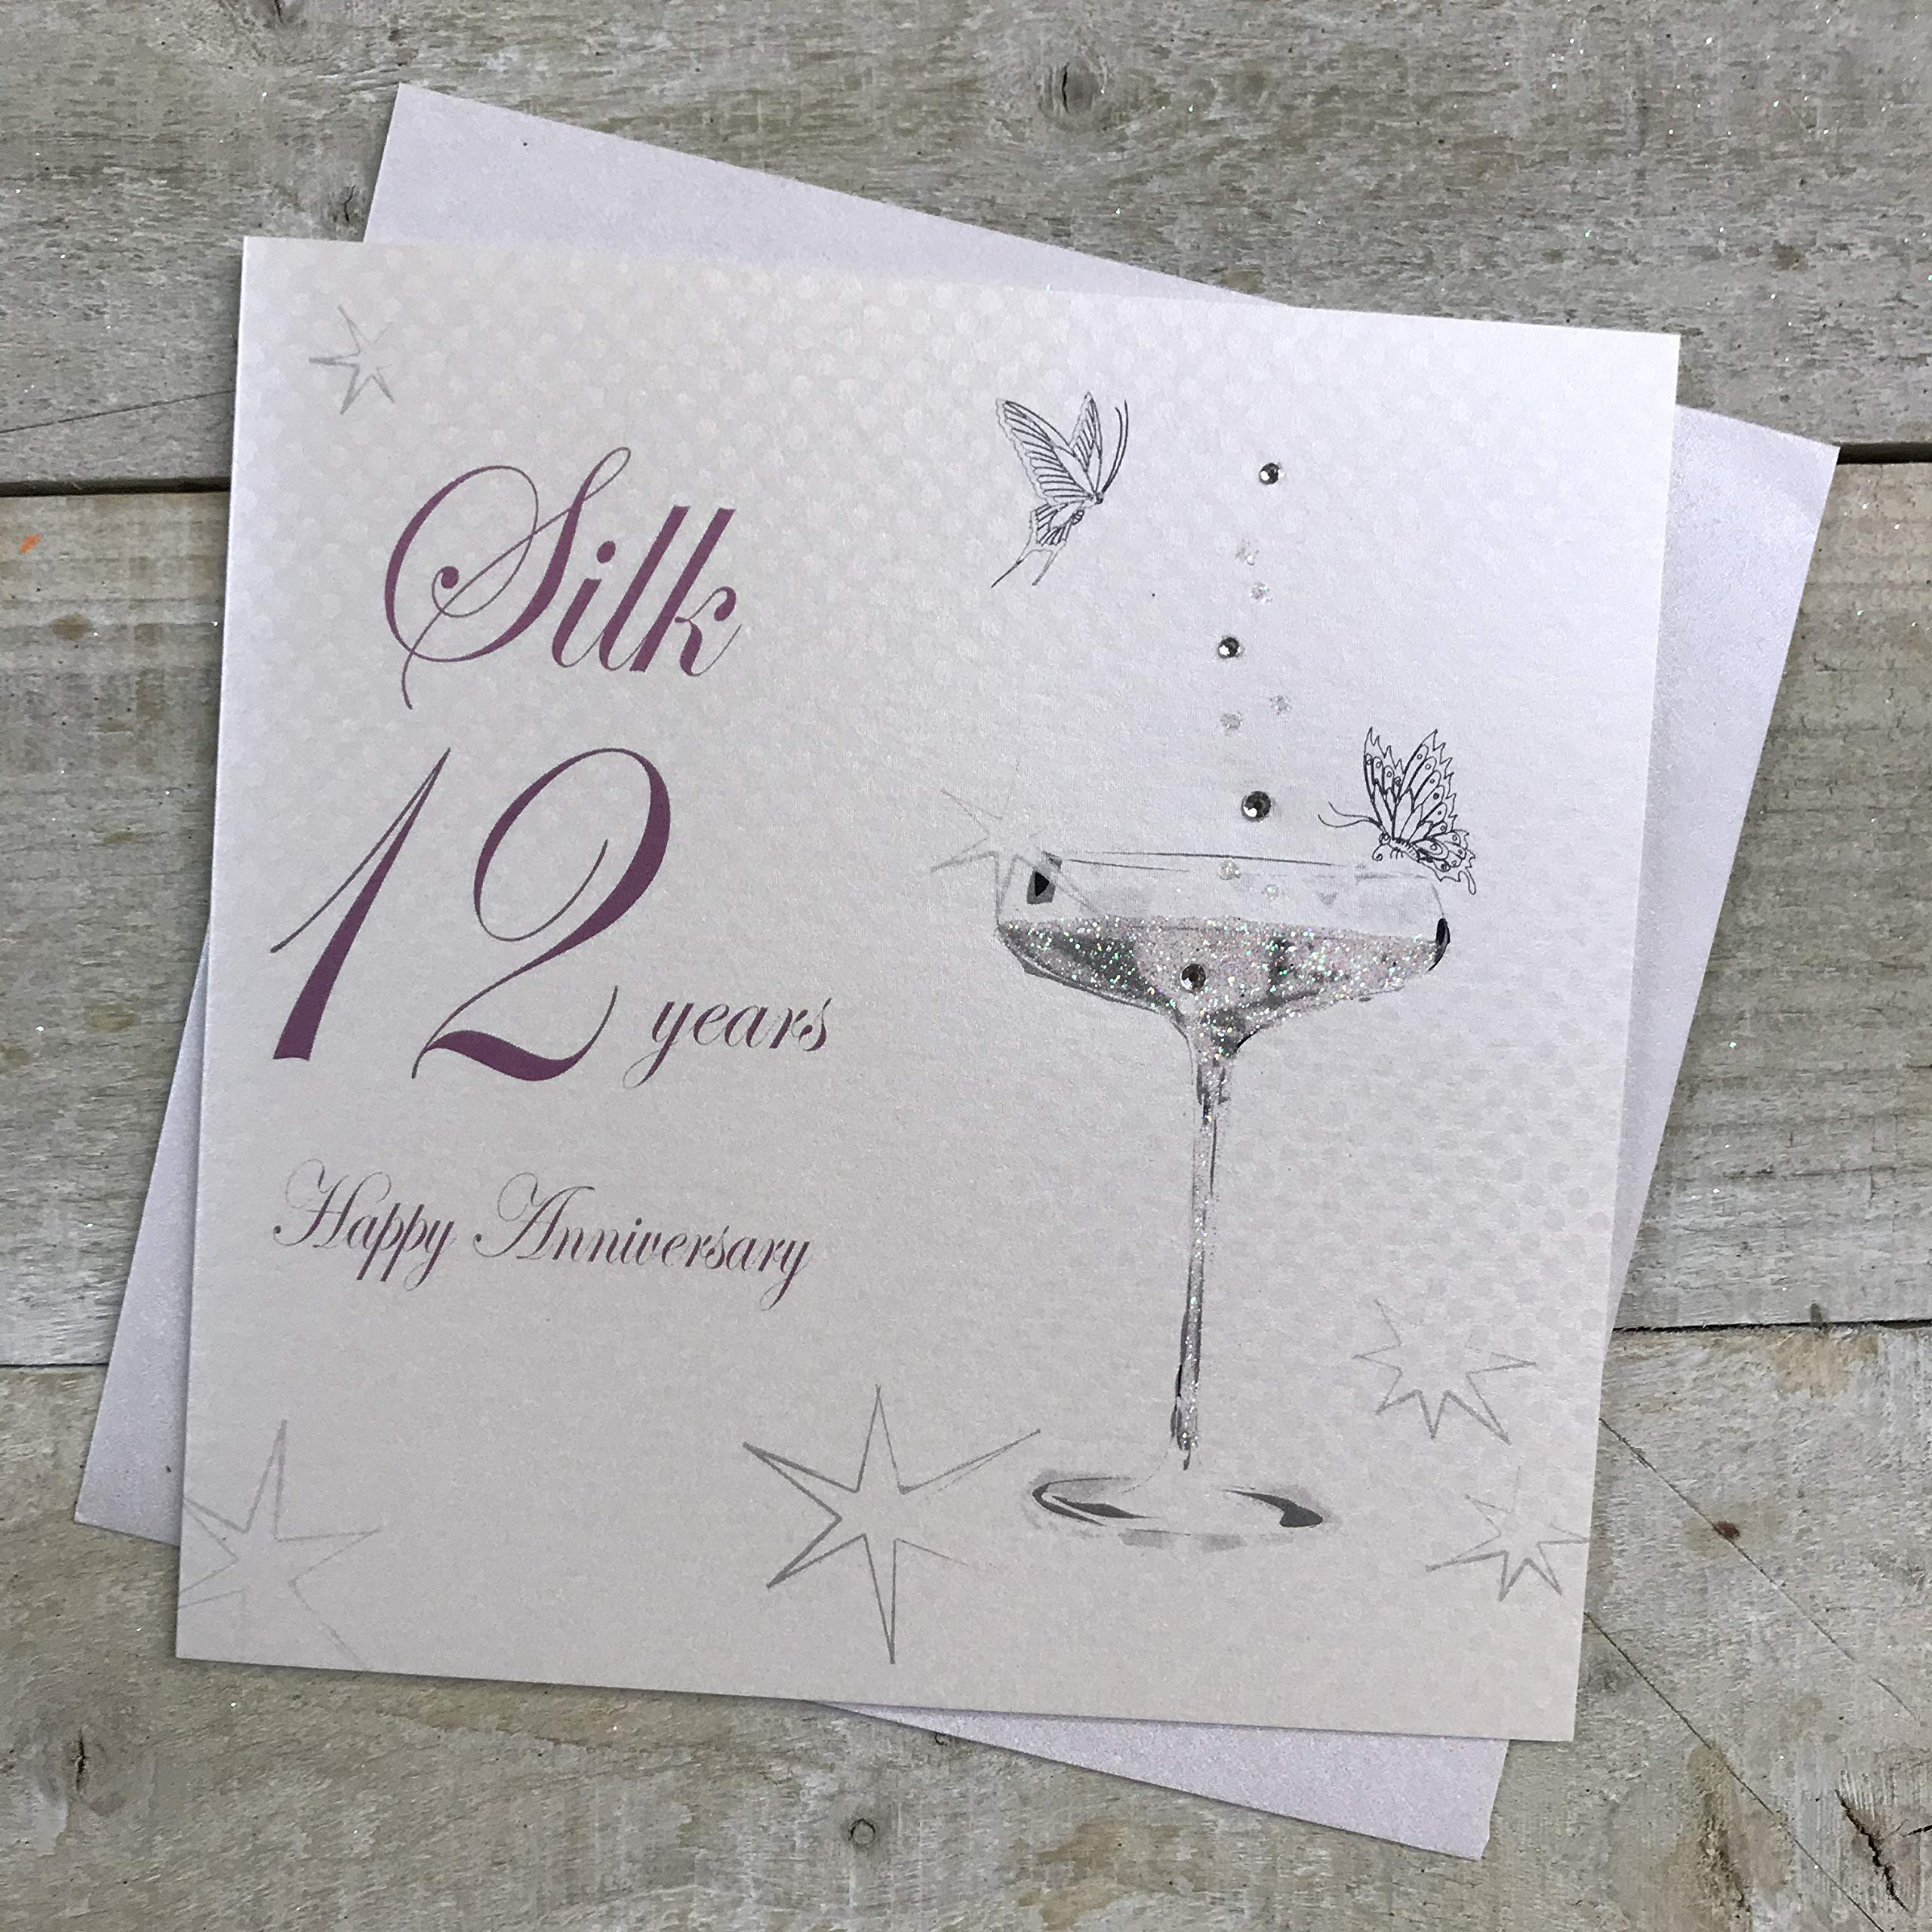 Iconic Collection 12th Wedding Anniversary Card Silk Anniversary